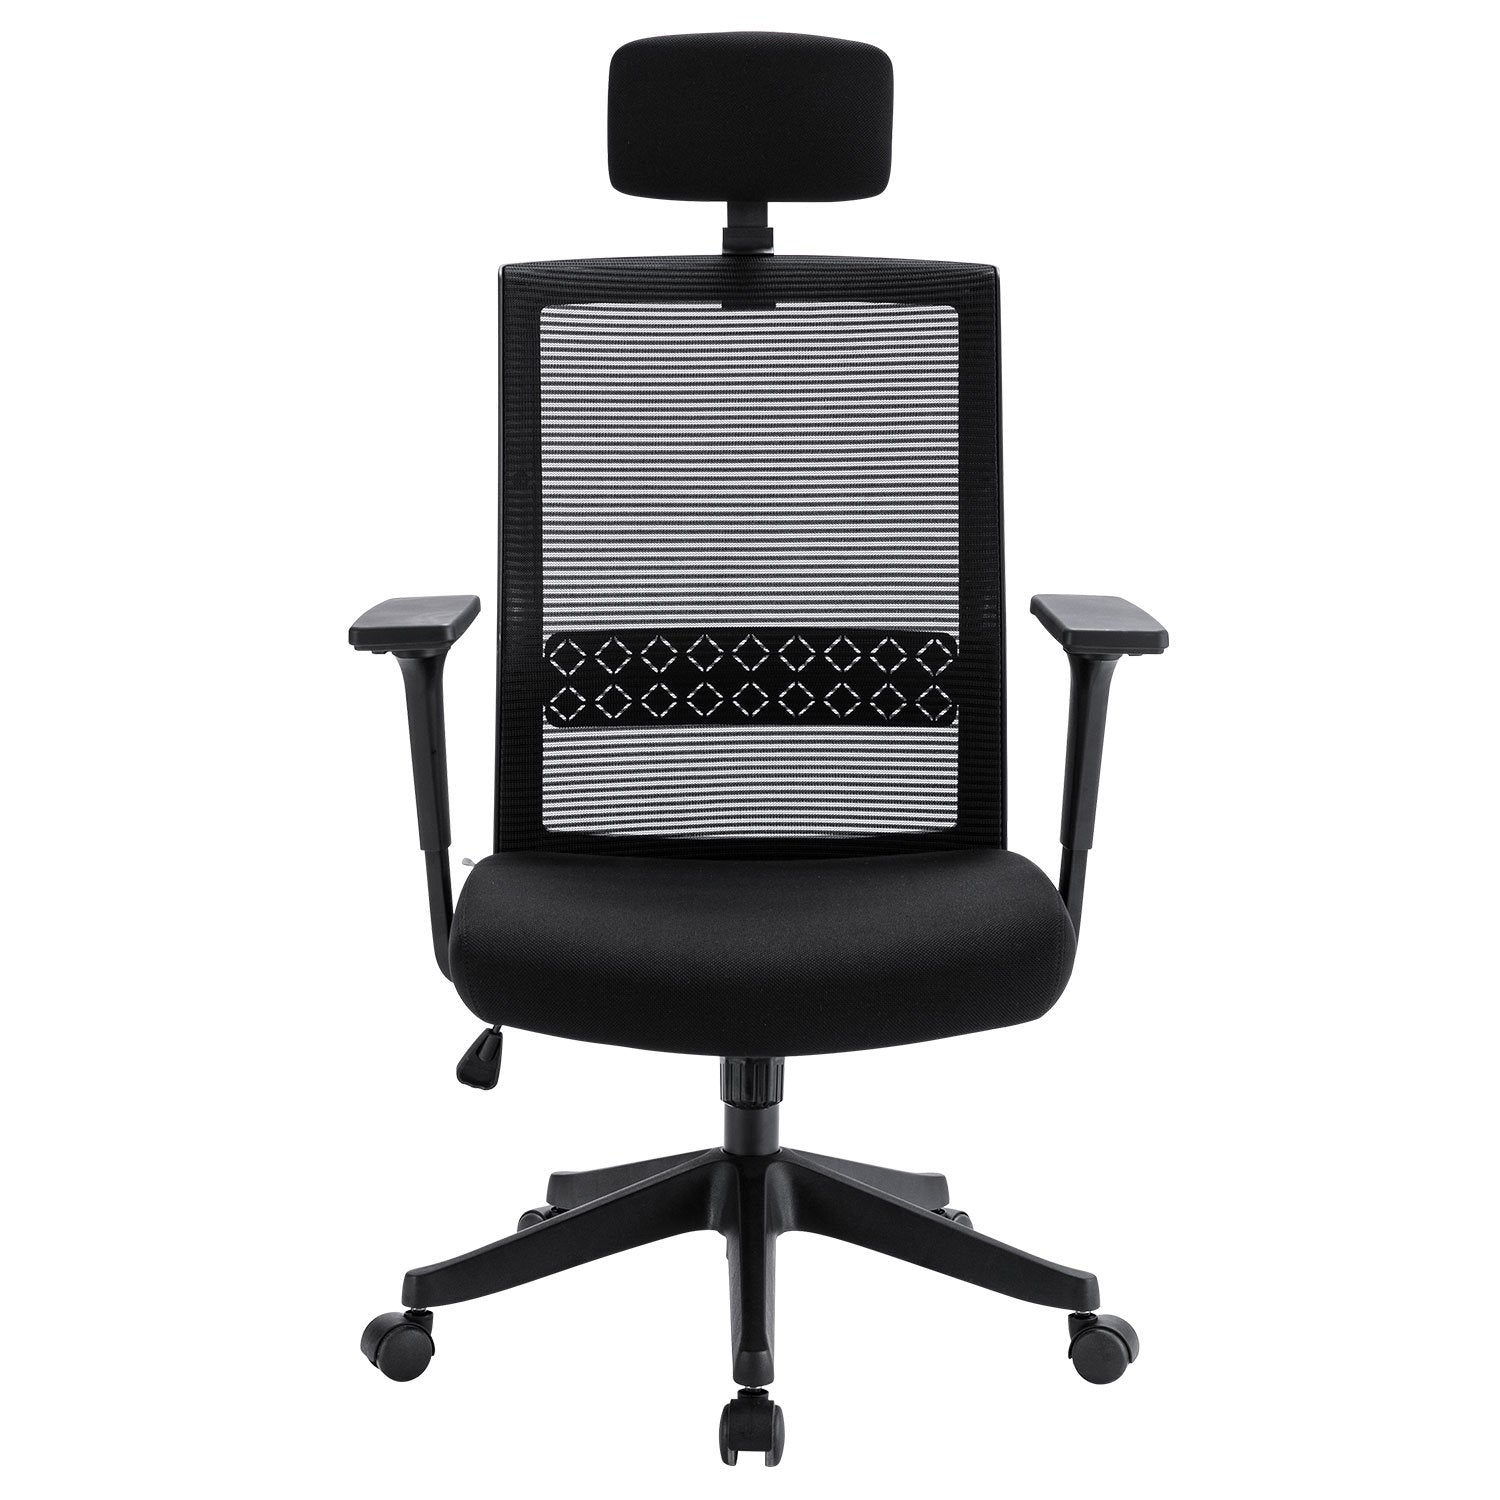 Ergonomic Office Chair Adjustable Headrest